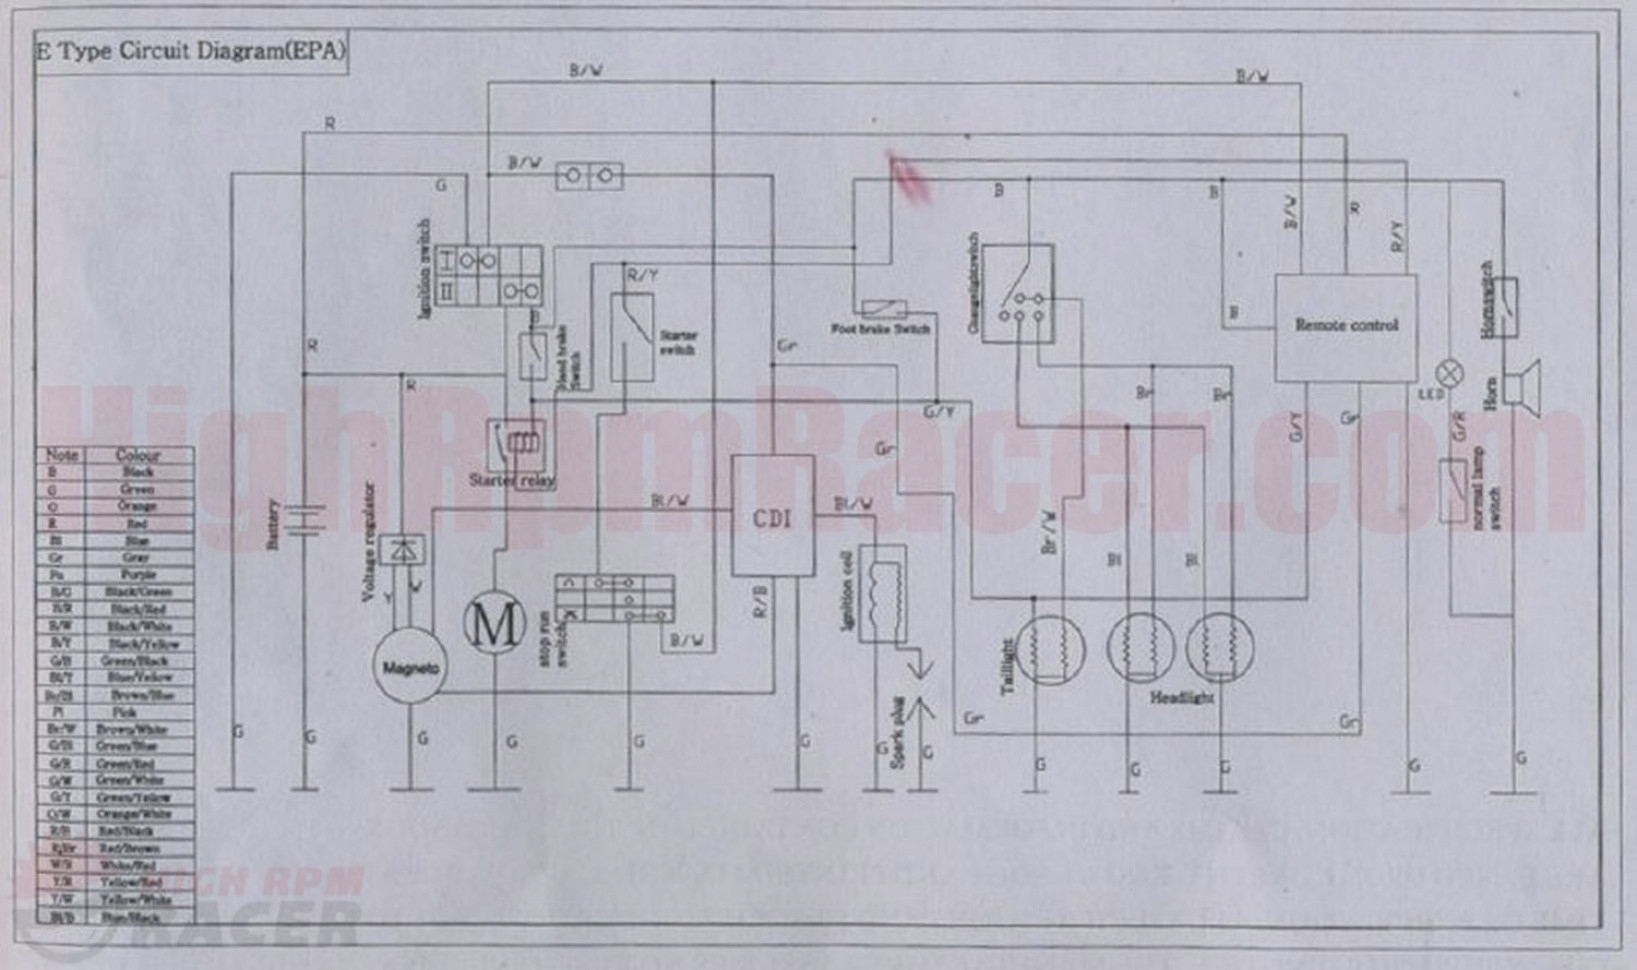 Sunl Atv Wiring Diagram | Wiring Diagram - John Deere 318 Wiring Diagram